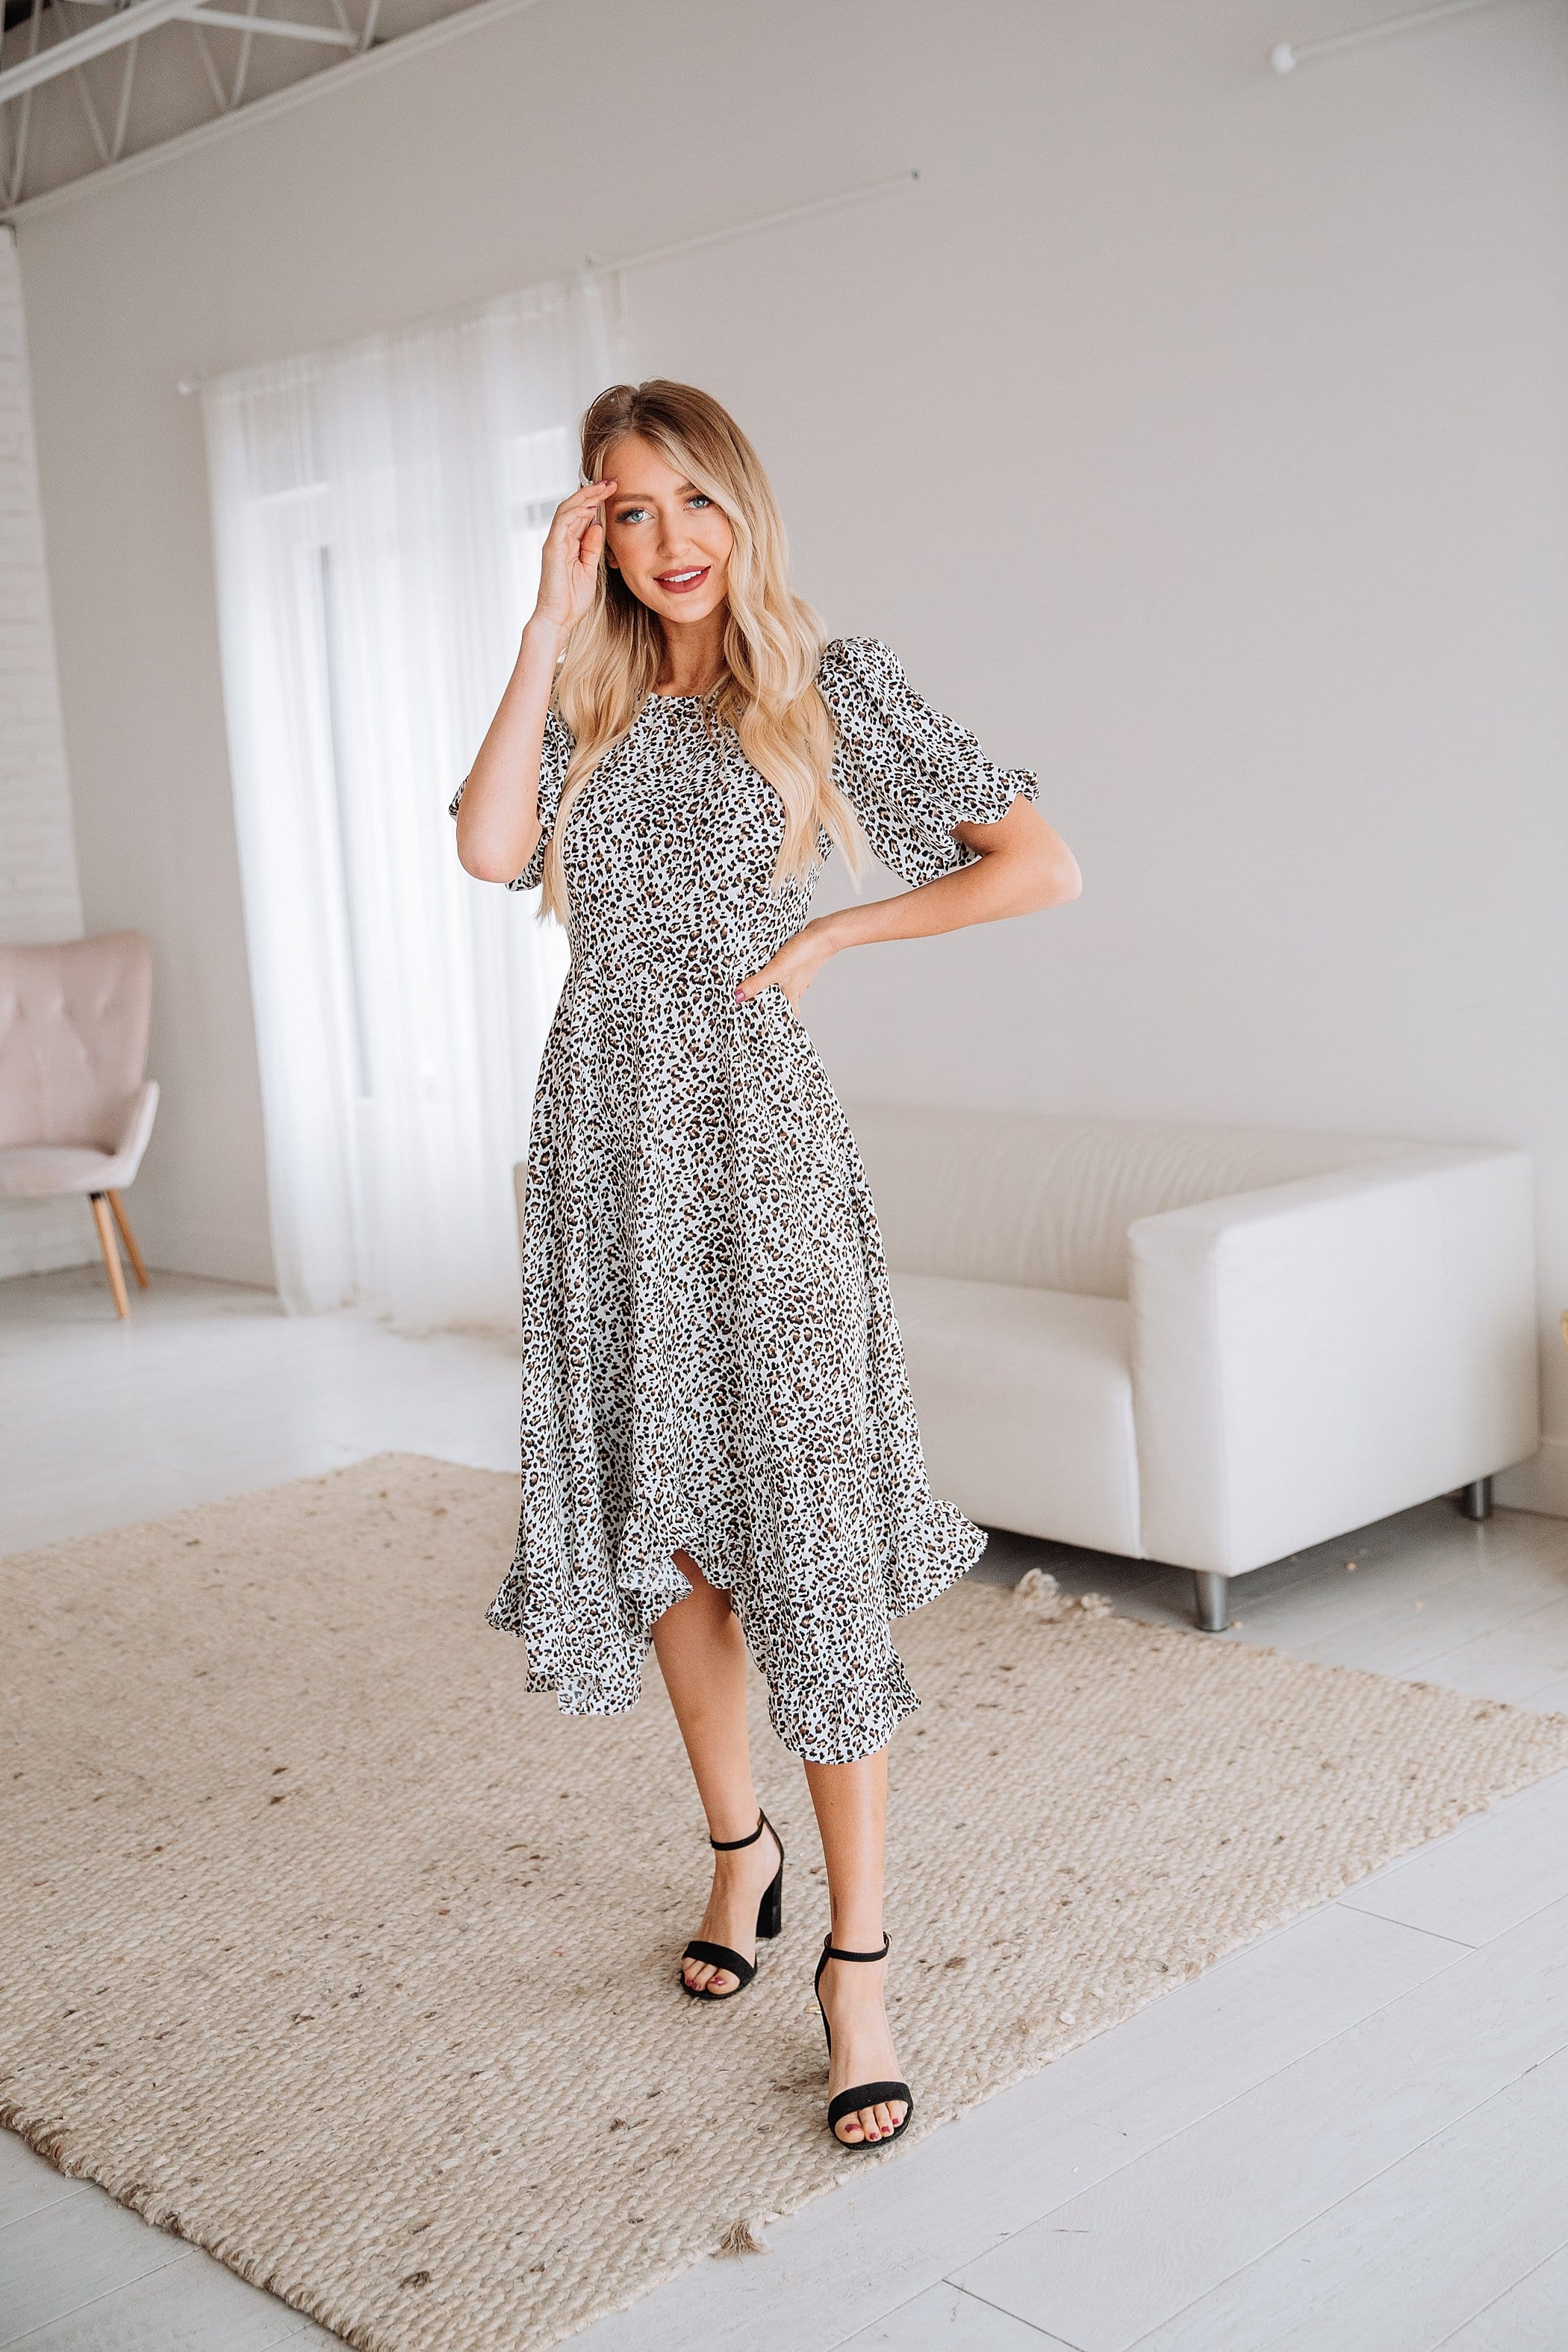 The Fia Ruffle Hem Midi Dress in Animal Print